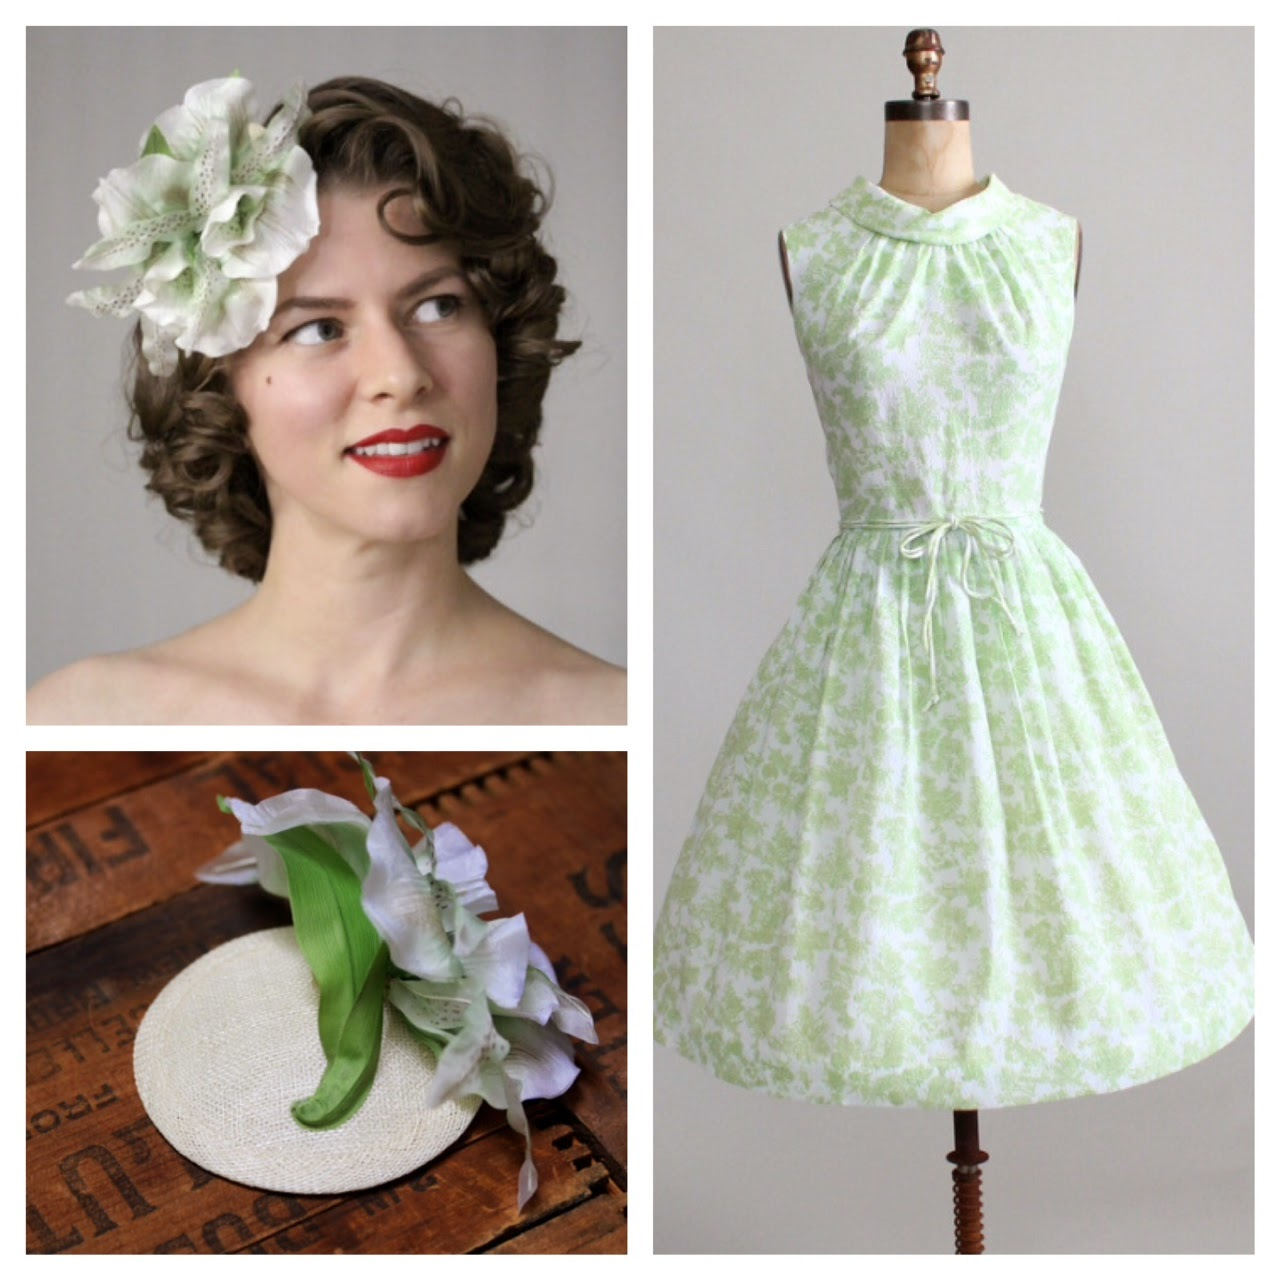 Mint Julep - vintage 50s/60s pairing #vintage #dress #1960s #fashion #orchid #green